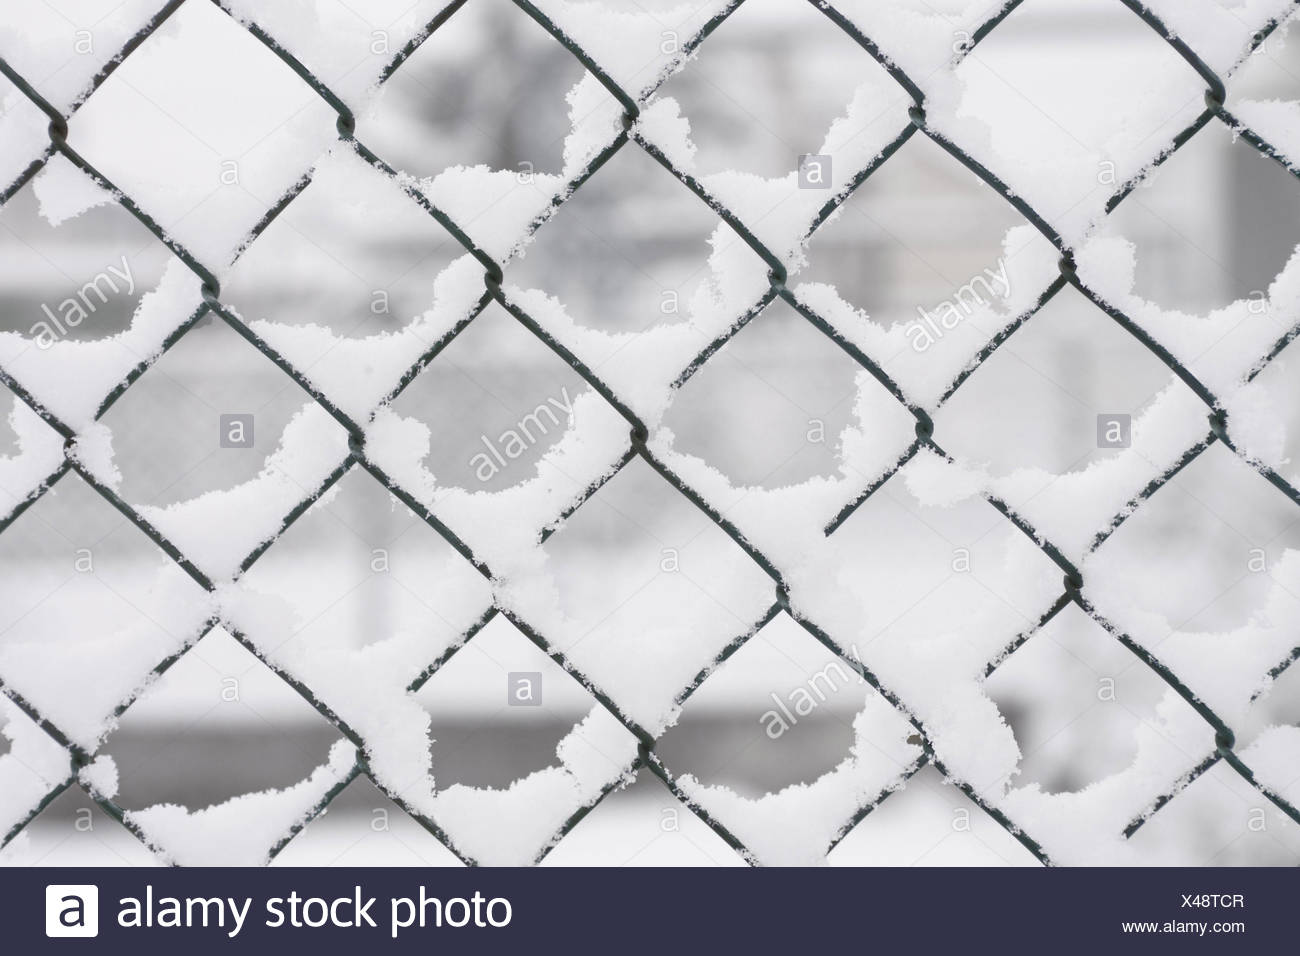 Netting Wire Stock Photos & Netting Wire Stock Images - Alamy